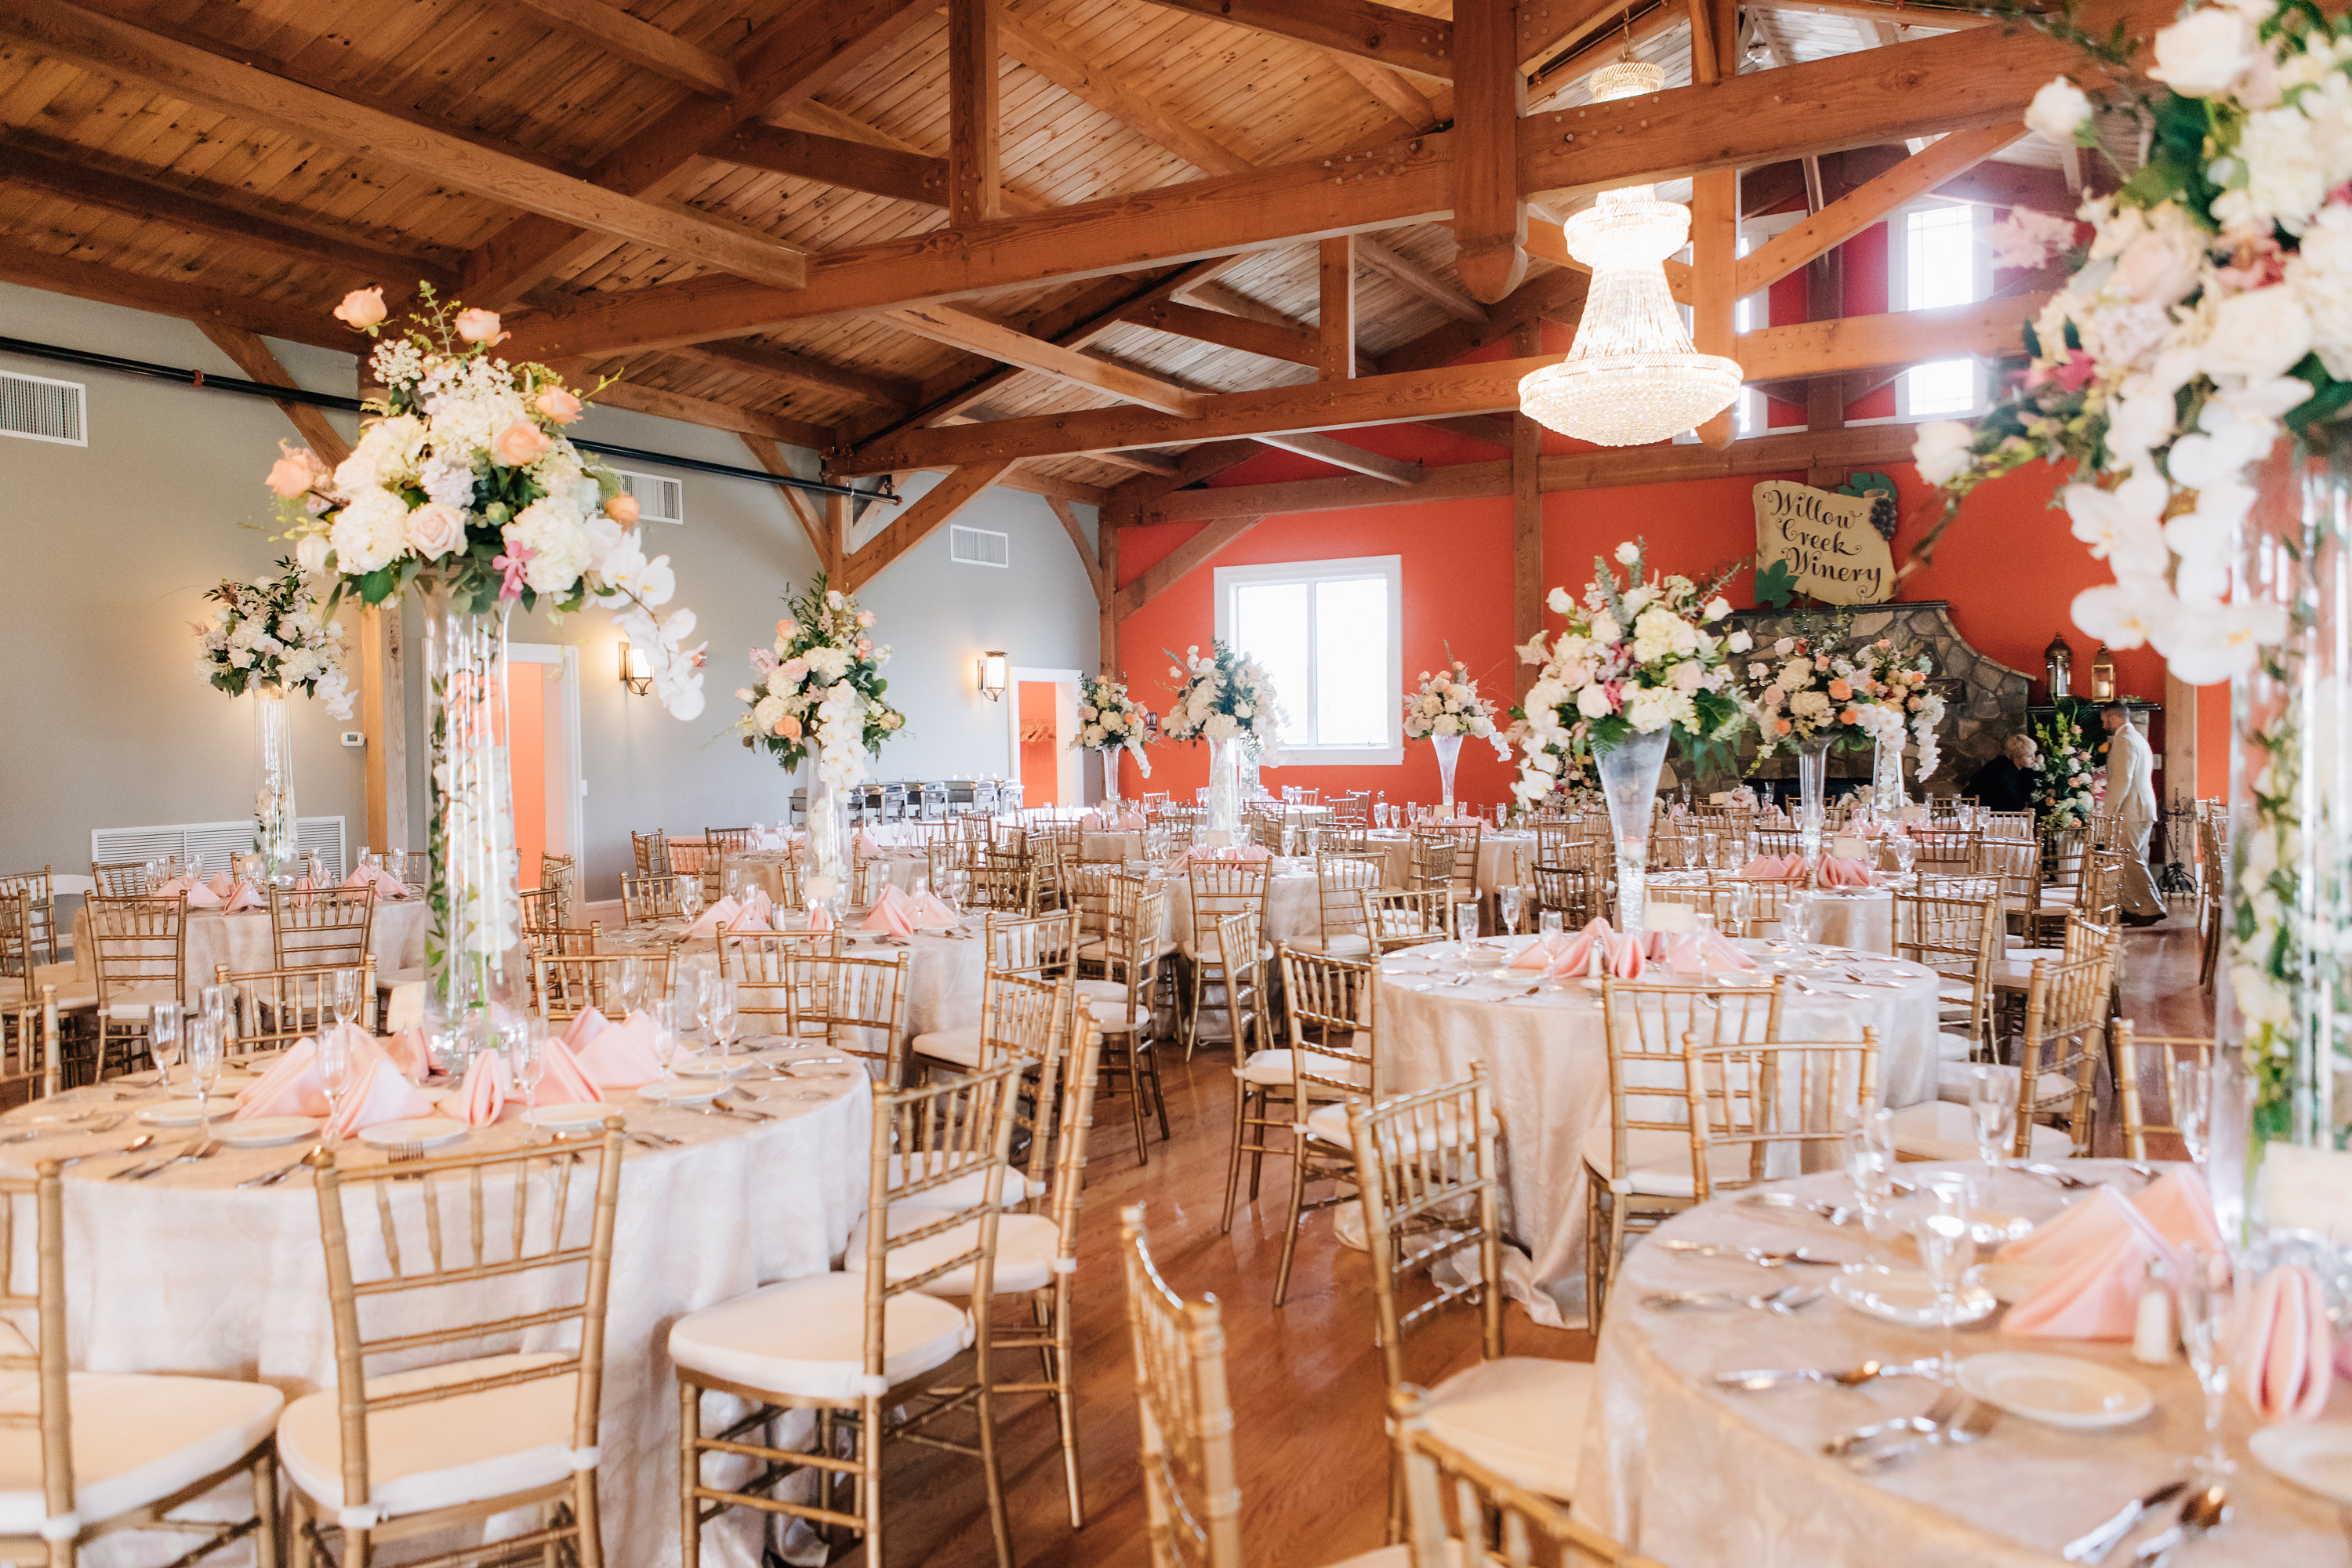 Weddings At Willow Creek Winery Willow Creek Farm Winery